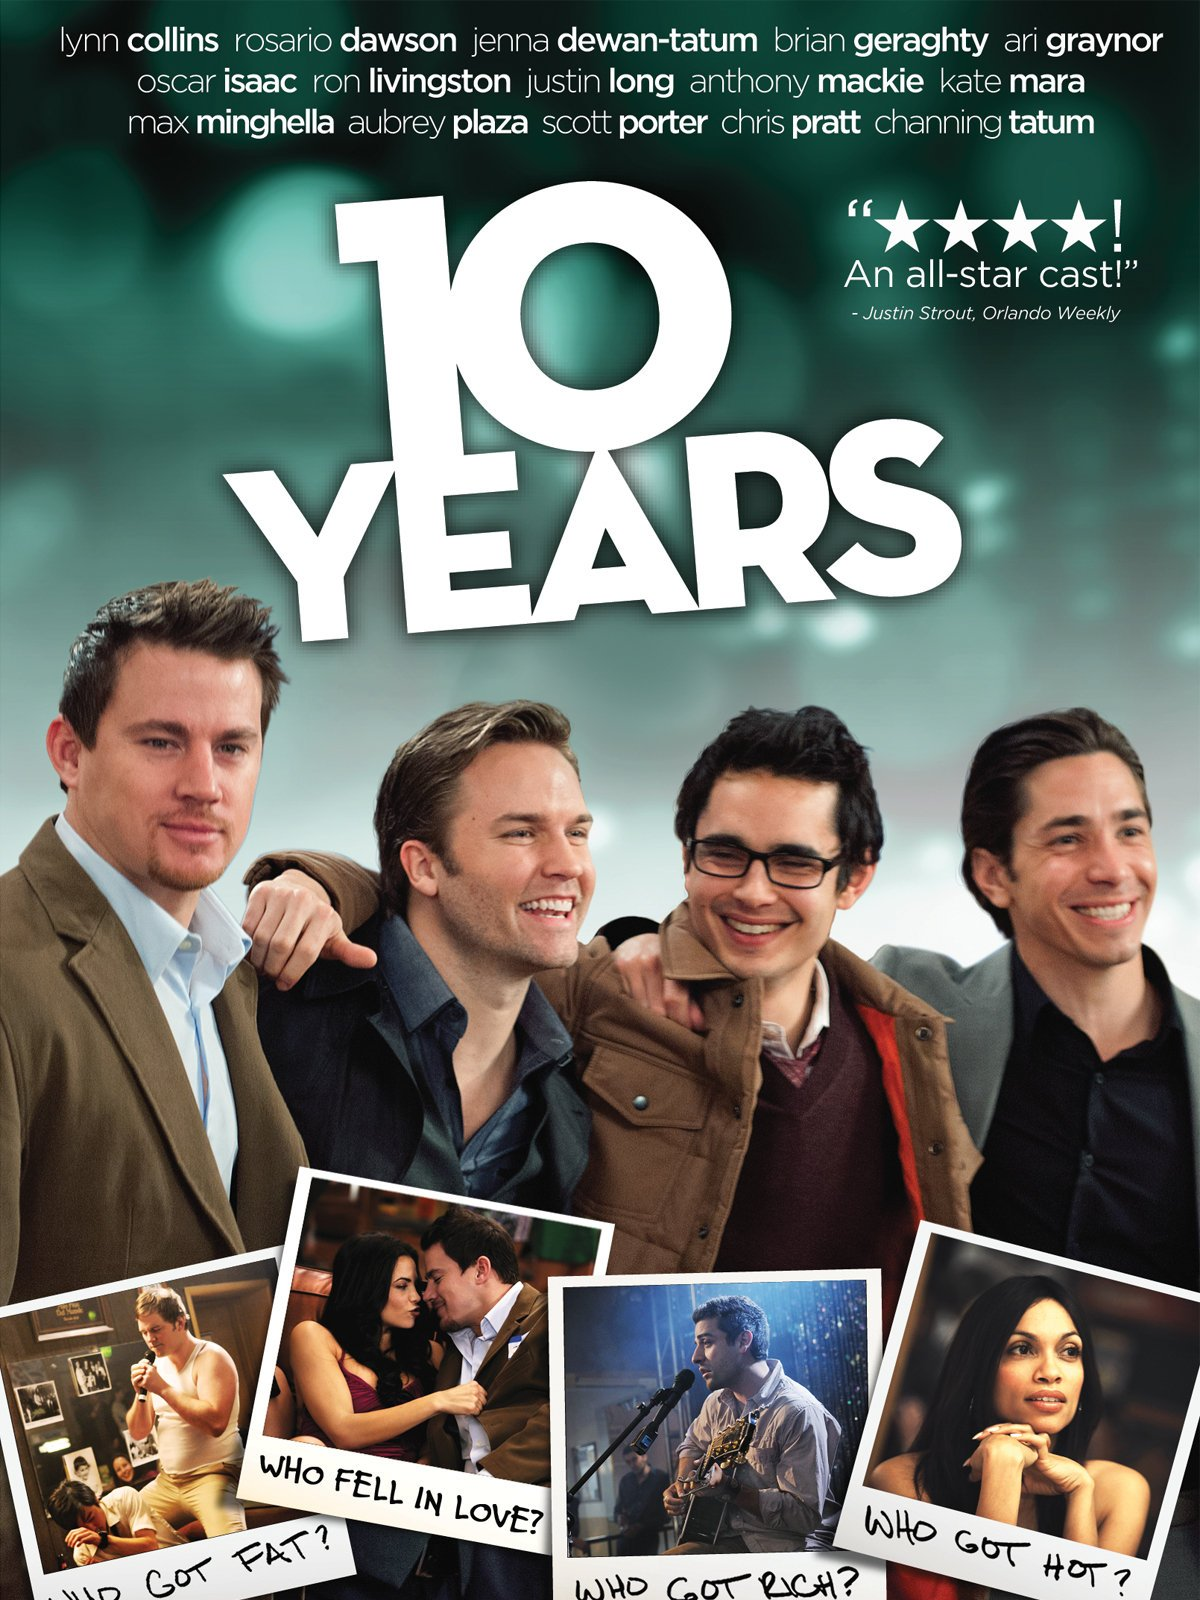 Amazon. Com: 10 years: channing tatum, chris pratt, oscar isaac.